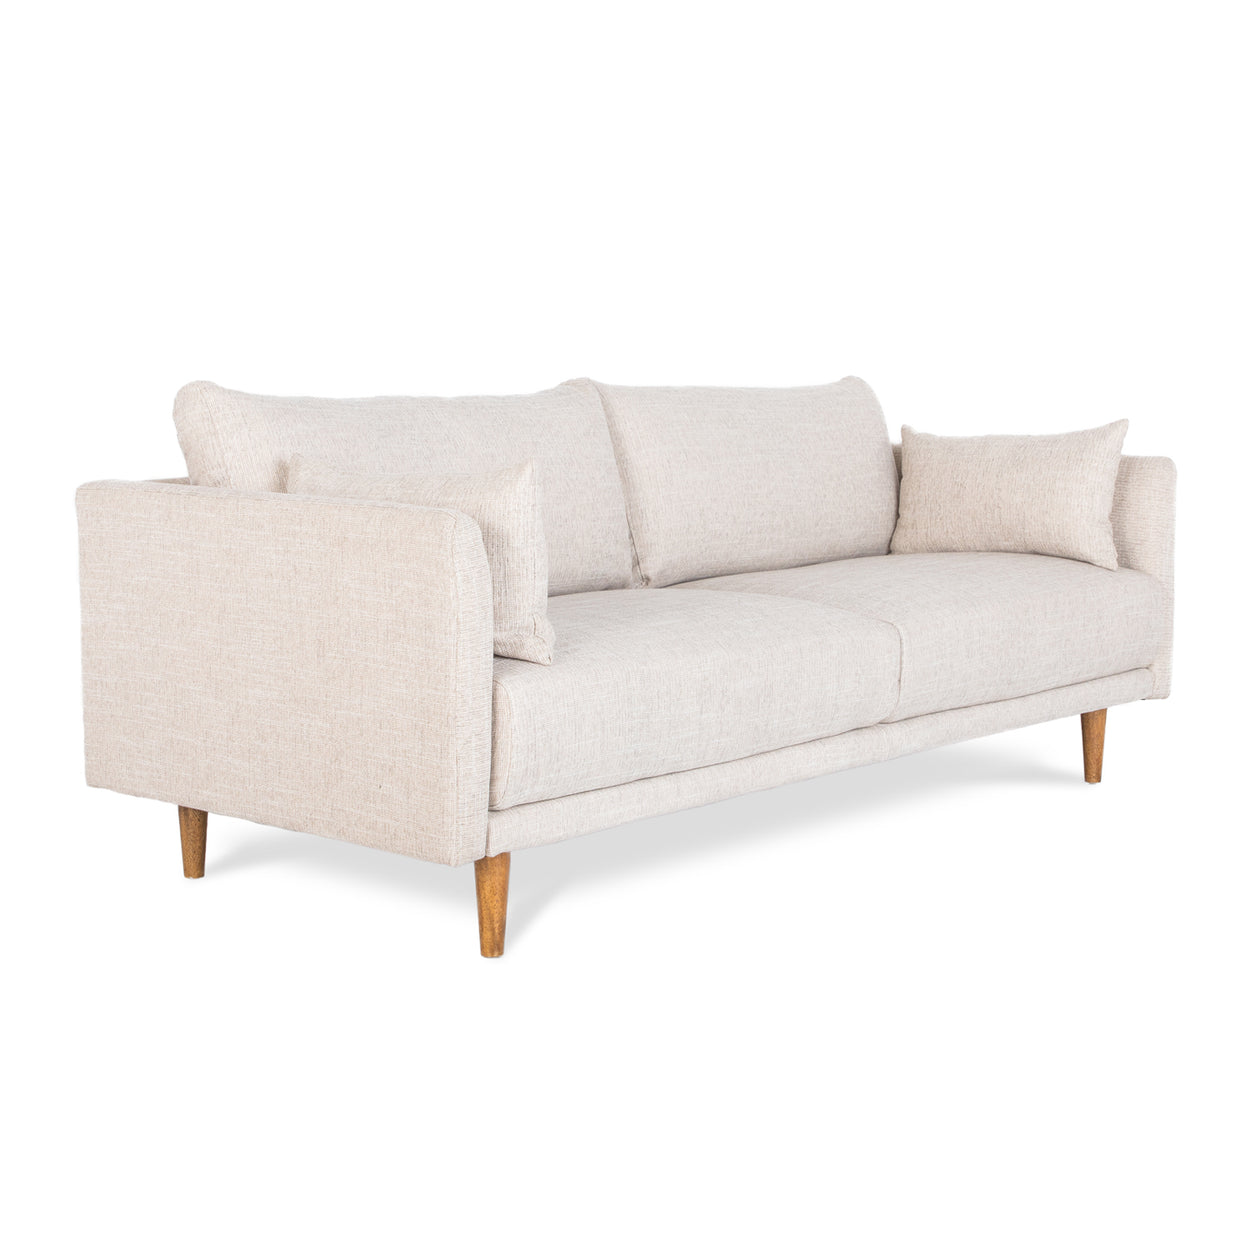 side of cream 3 seater sofa